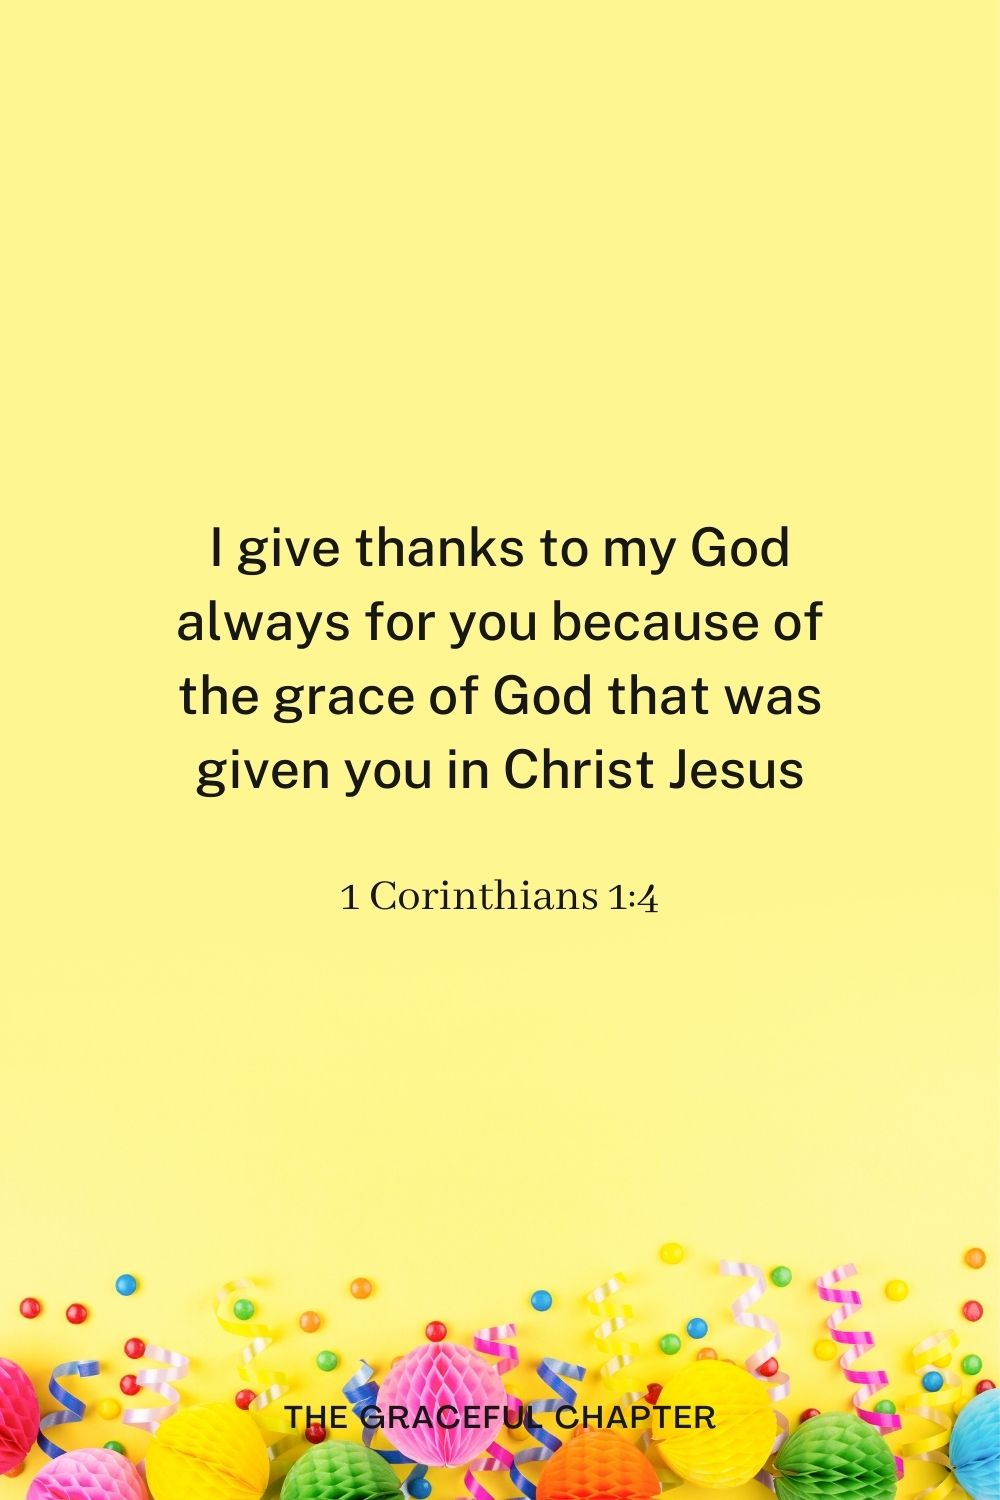 birthday bible verses - I give thanks to my God always for you because of the grace of God that was given you in Christ Jesus, 1 Corinthians 1:4